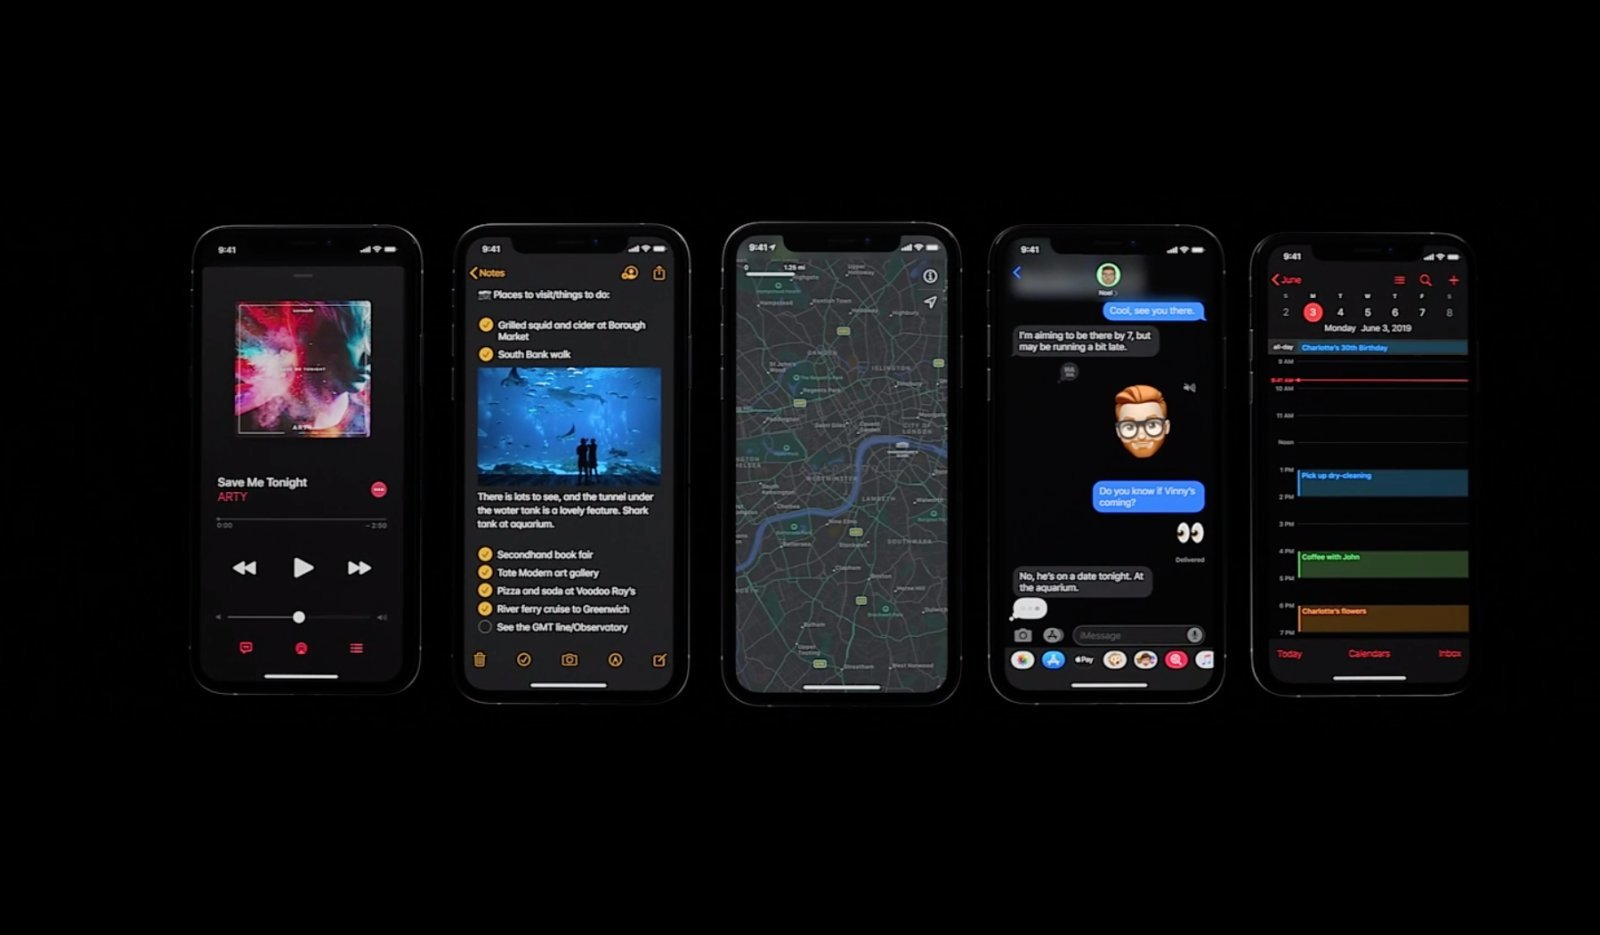 How Dark Mode Works for iPhone and iPad on iOS 13